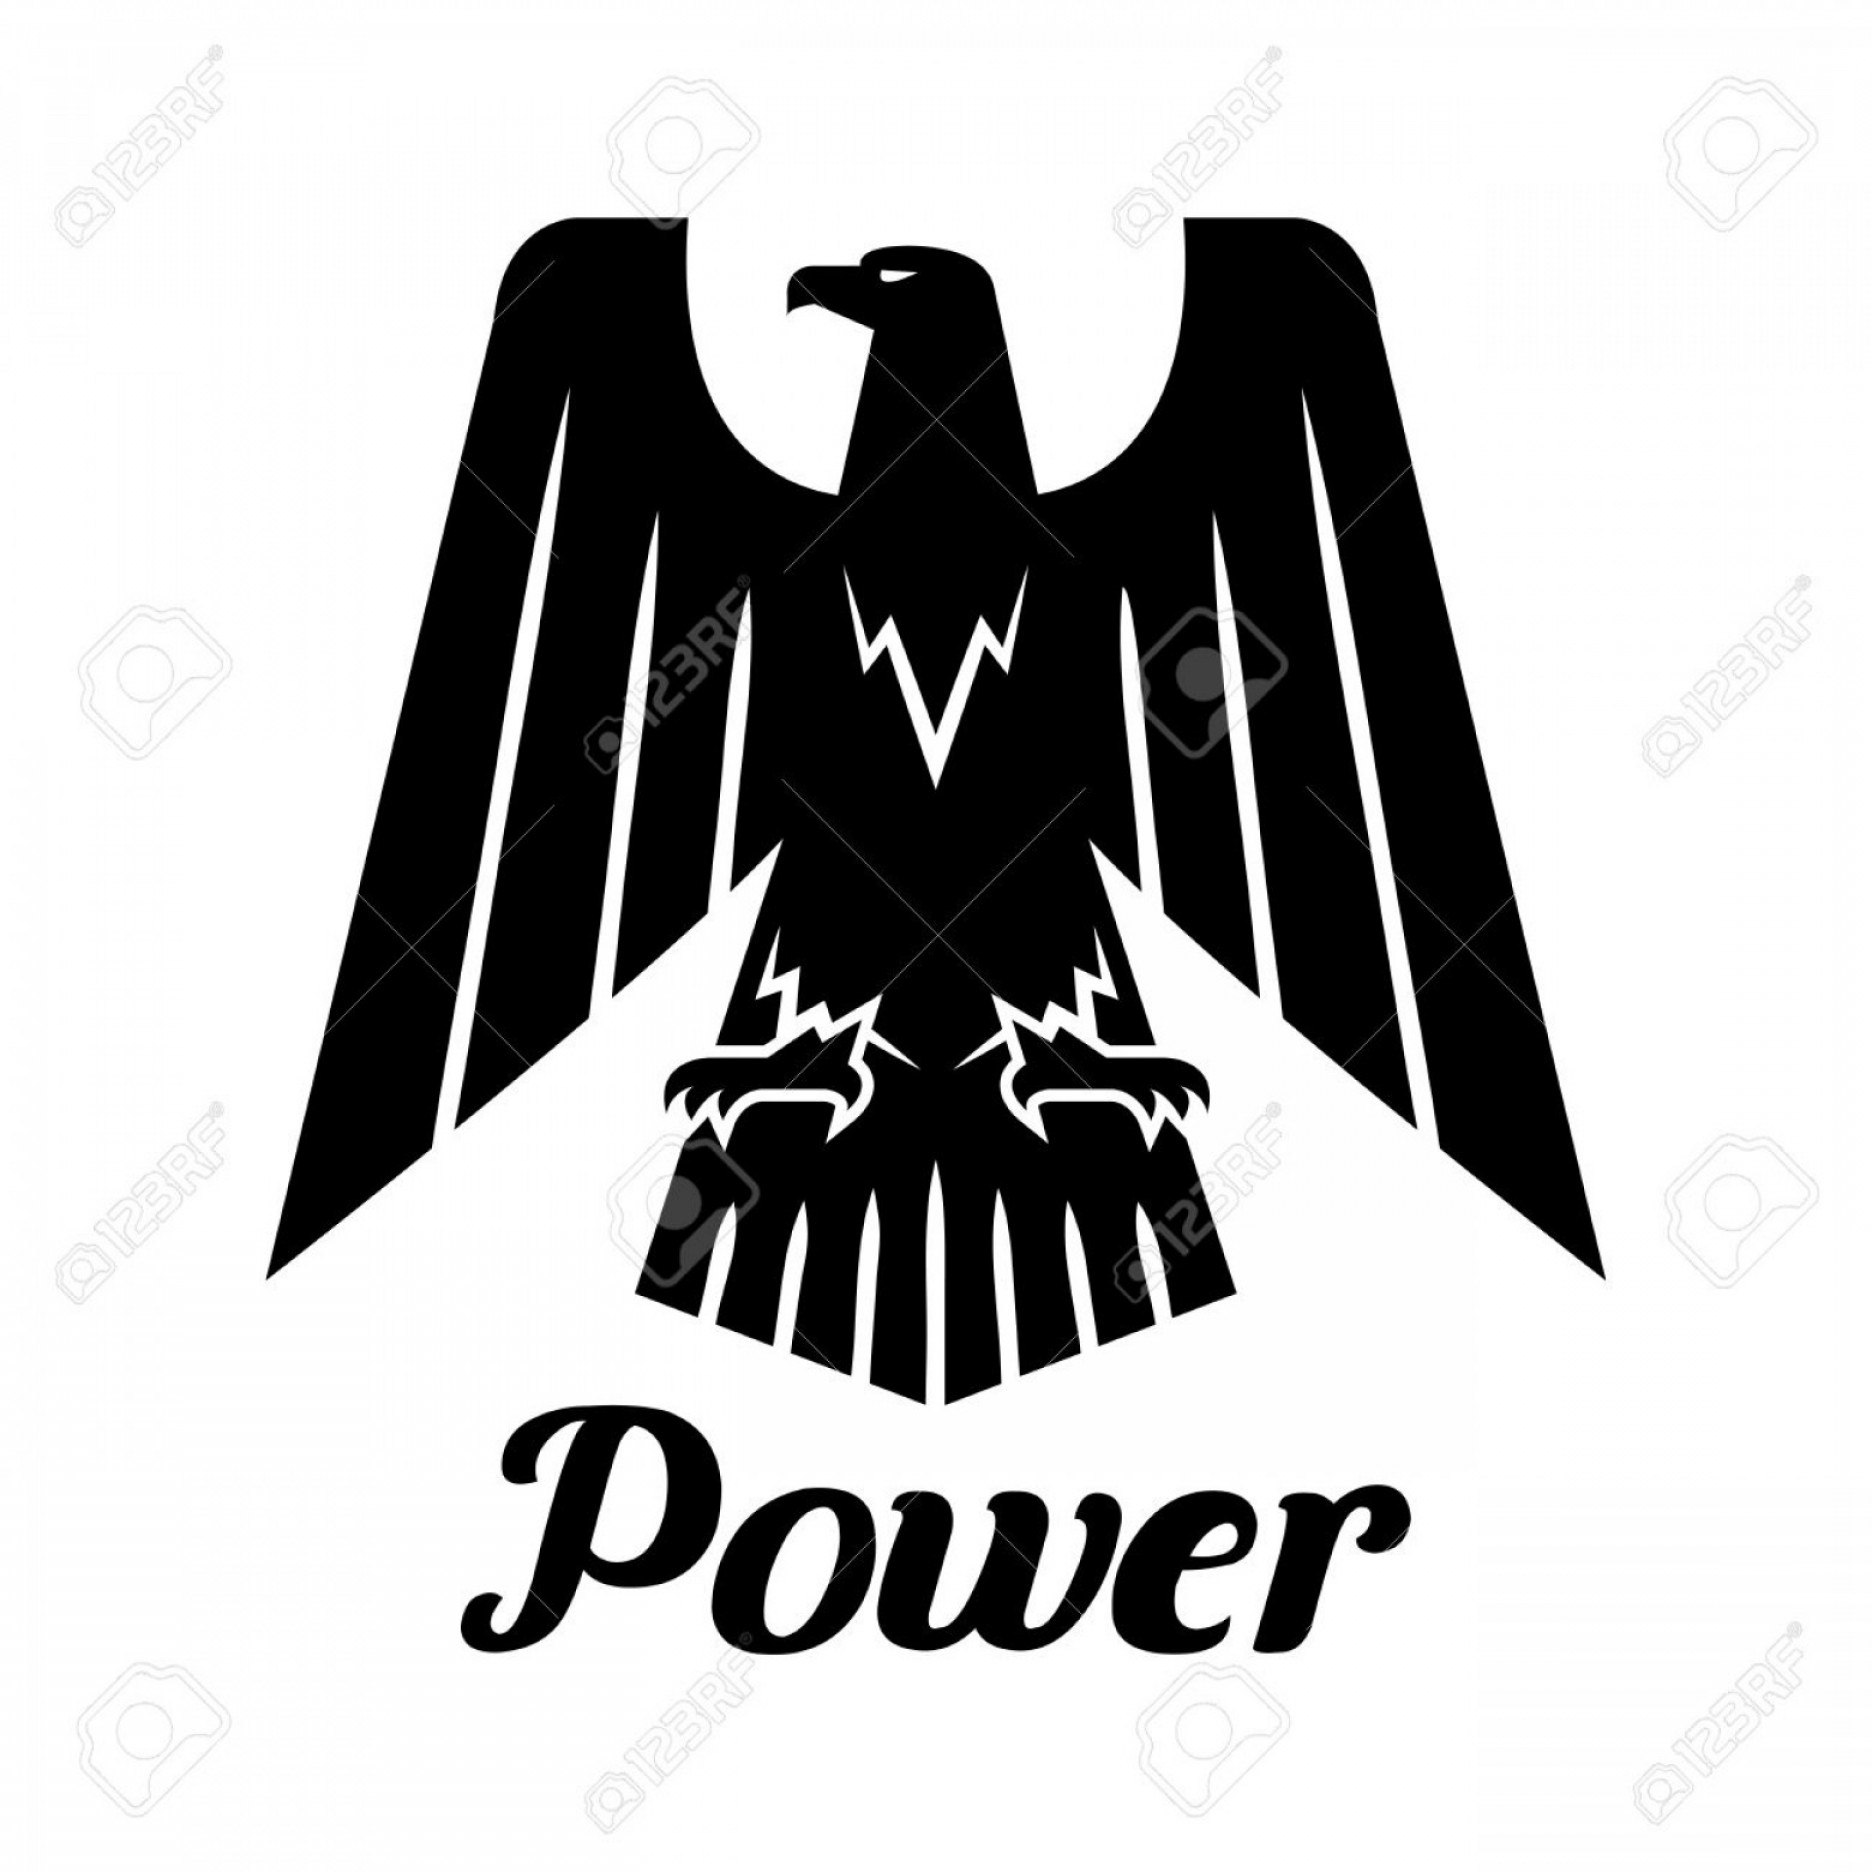 Falcon Silhouette Vector: Photostock Vector Eagle Isolated Icon Vector Heraldic Gothic Falcon Bird Symbol With Open Spread Wings And Claws Hawk